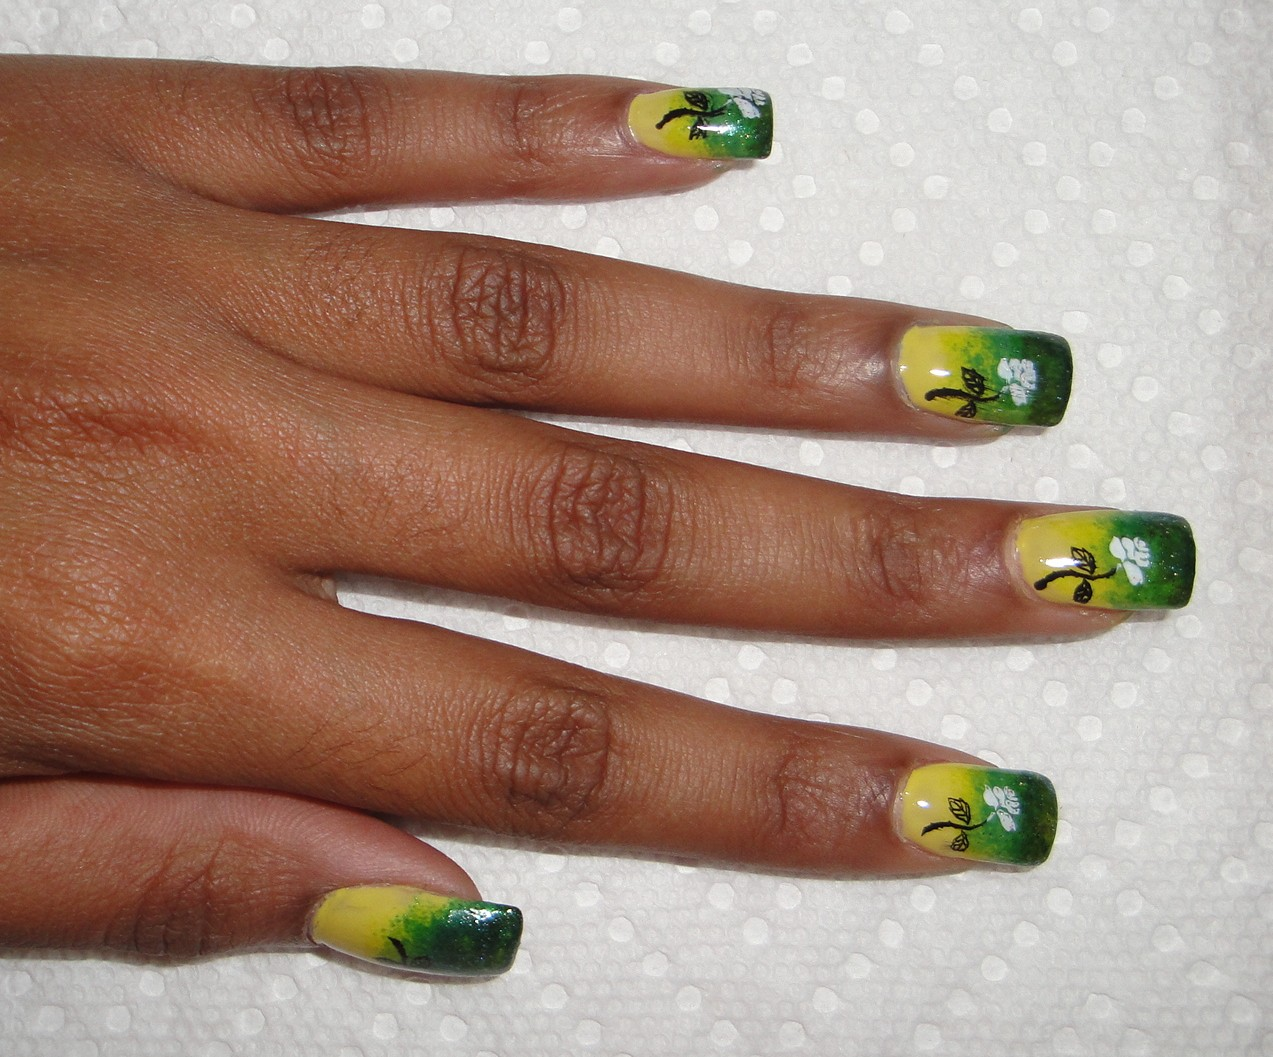 Nail Art Designs From Jamaica: Most beautiful flags nail art design ...